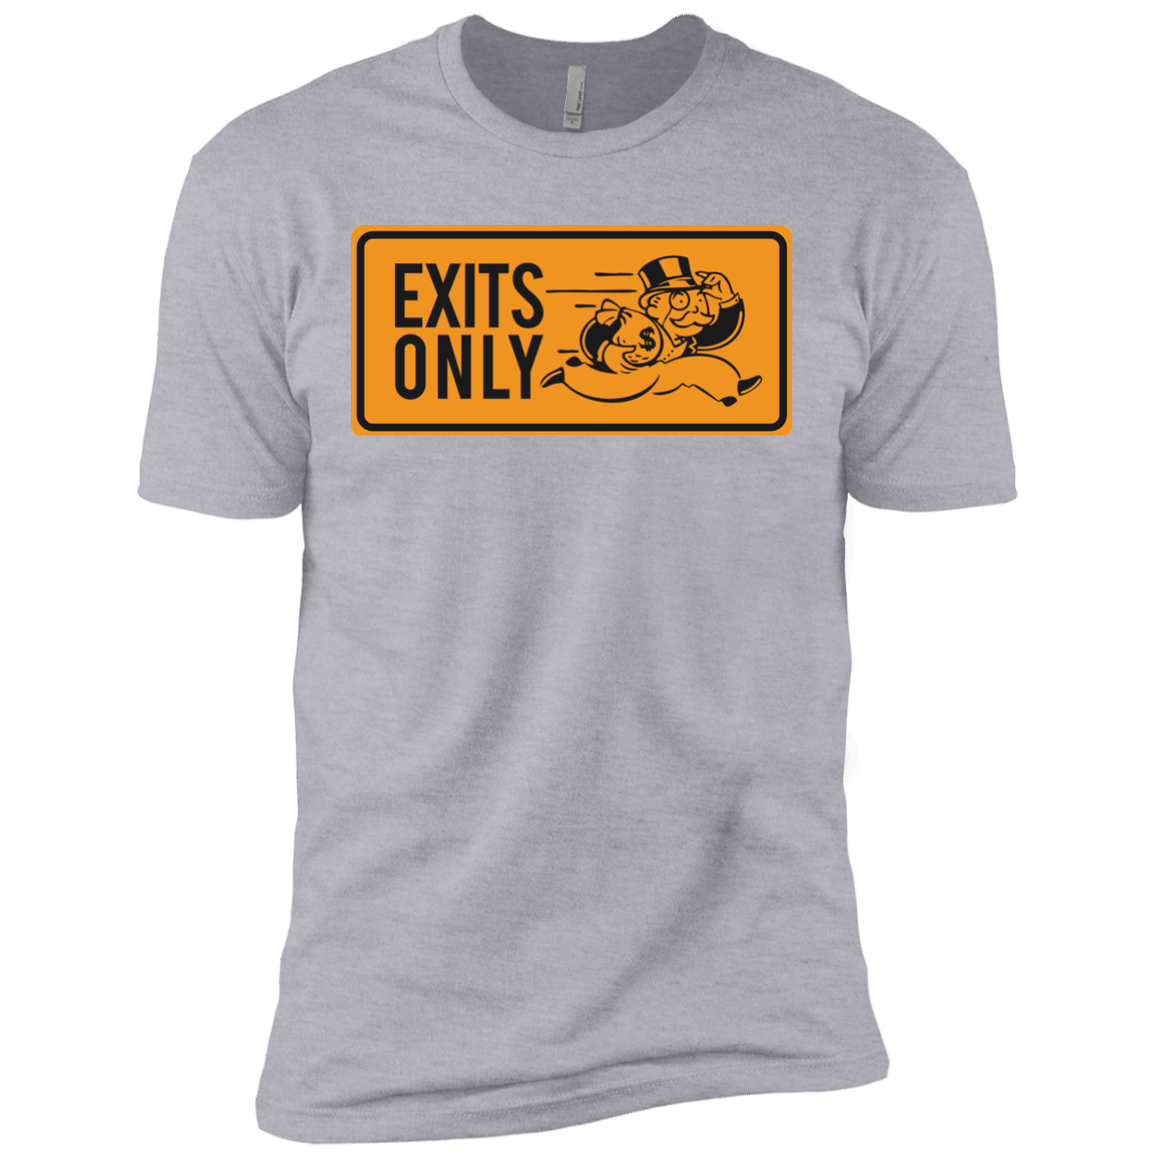 Exits Only Short Sleeve T-Shirt | Entrepreneur Apparel & Gear | Entrepreneur Empire